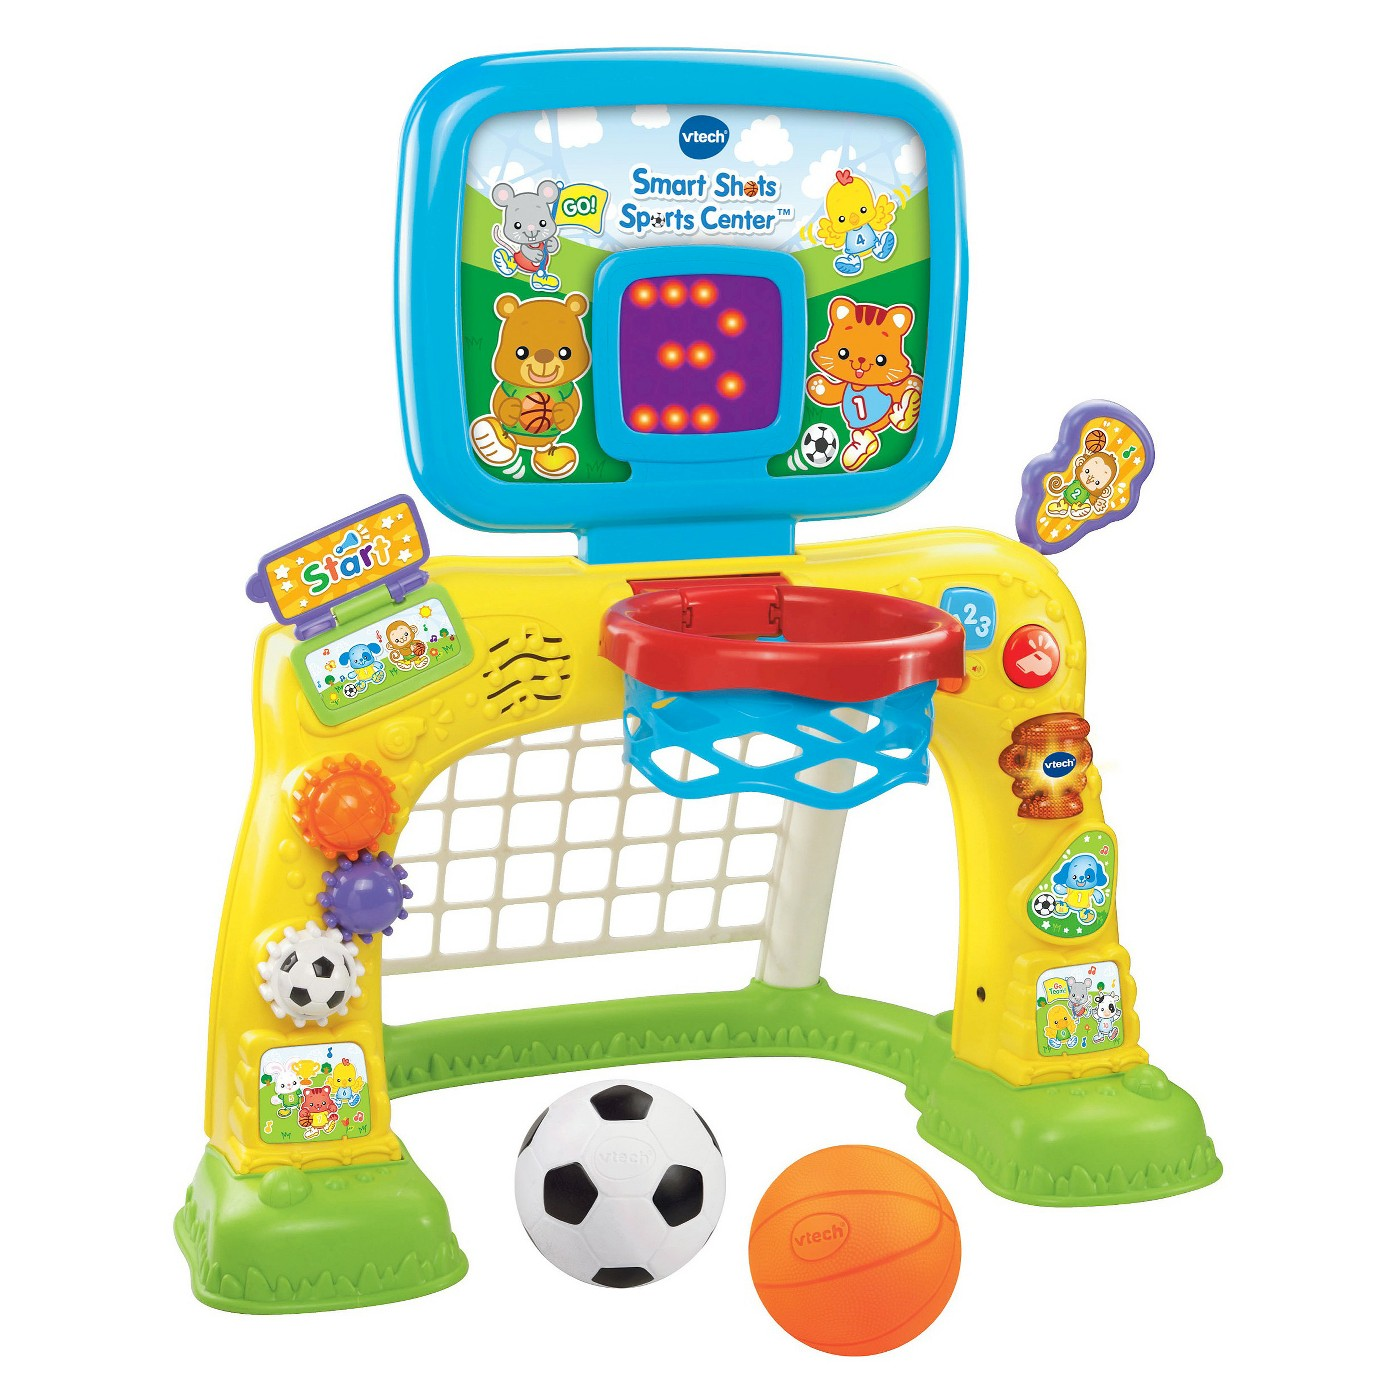 VTech Smart Shots Sports Center - image 1 of 5